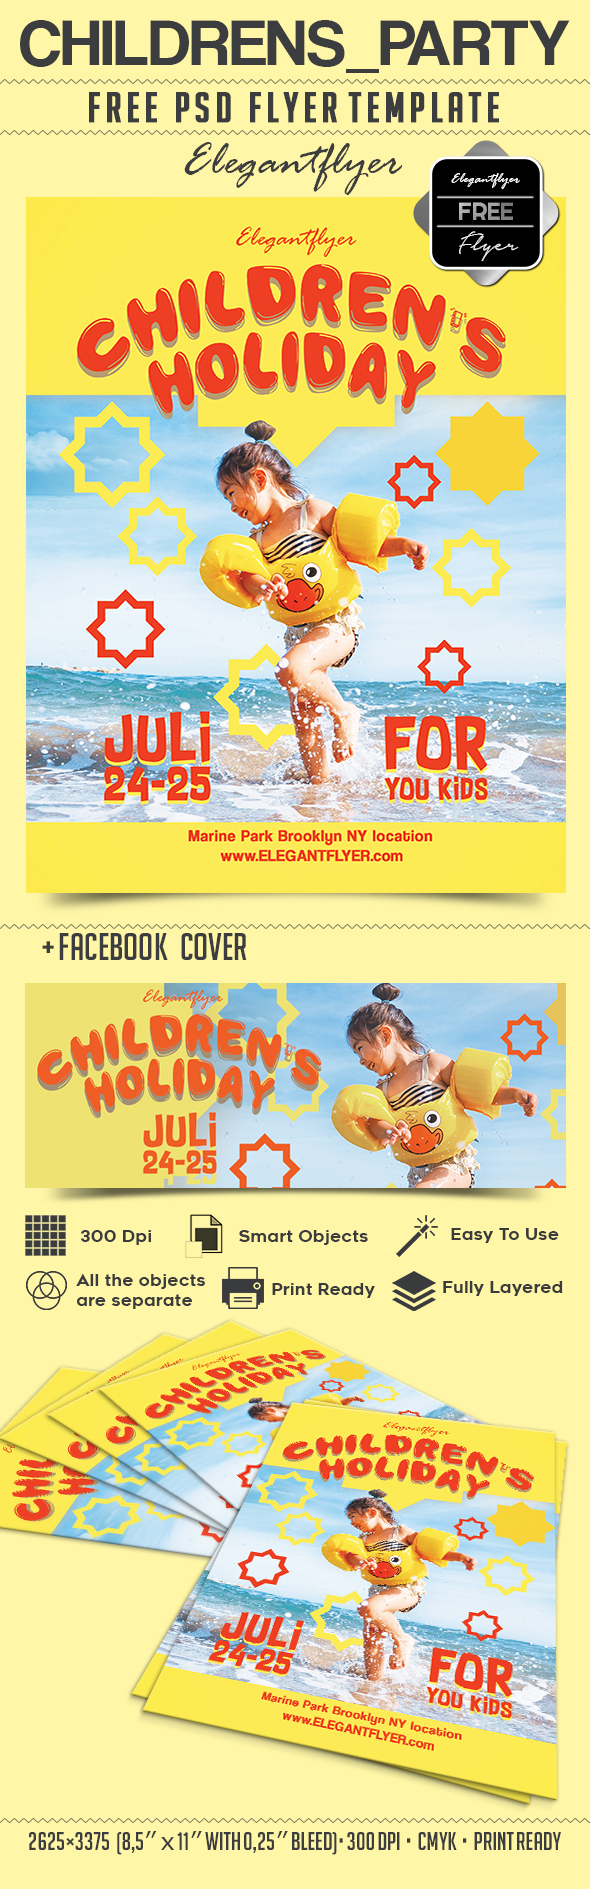 Children's party – Free Flyer PSD Template